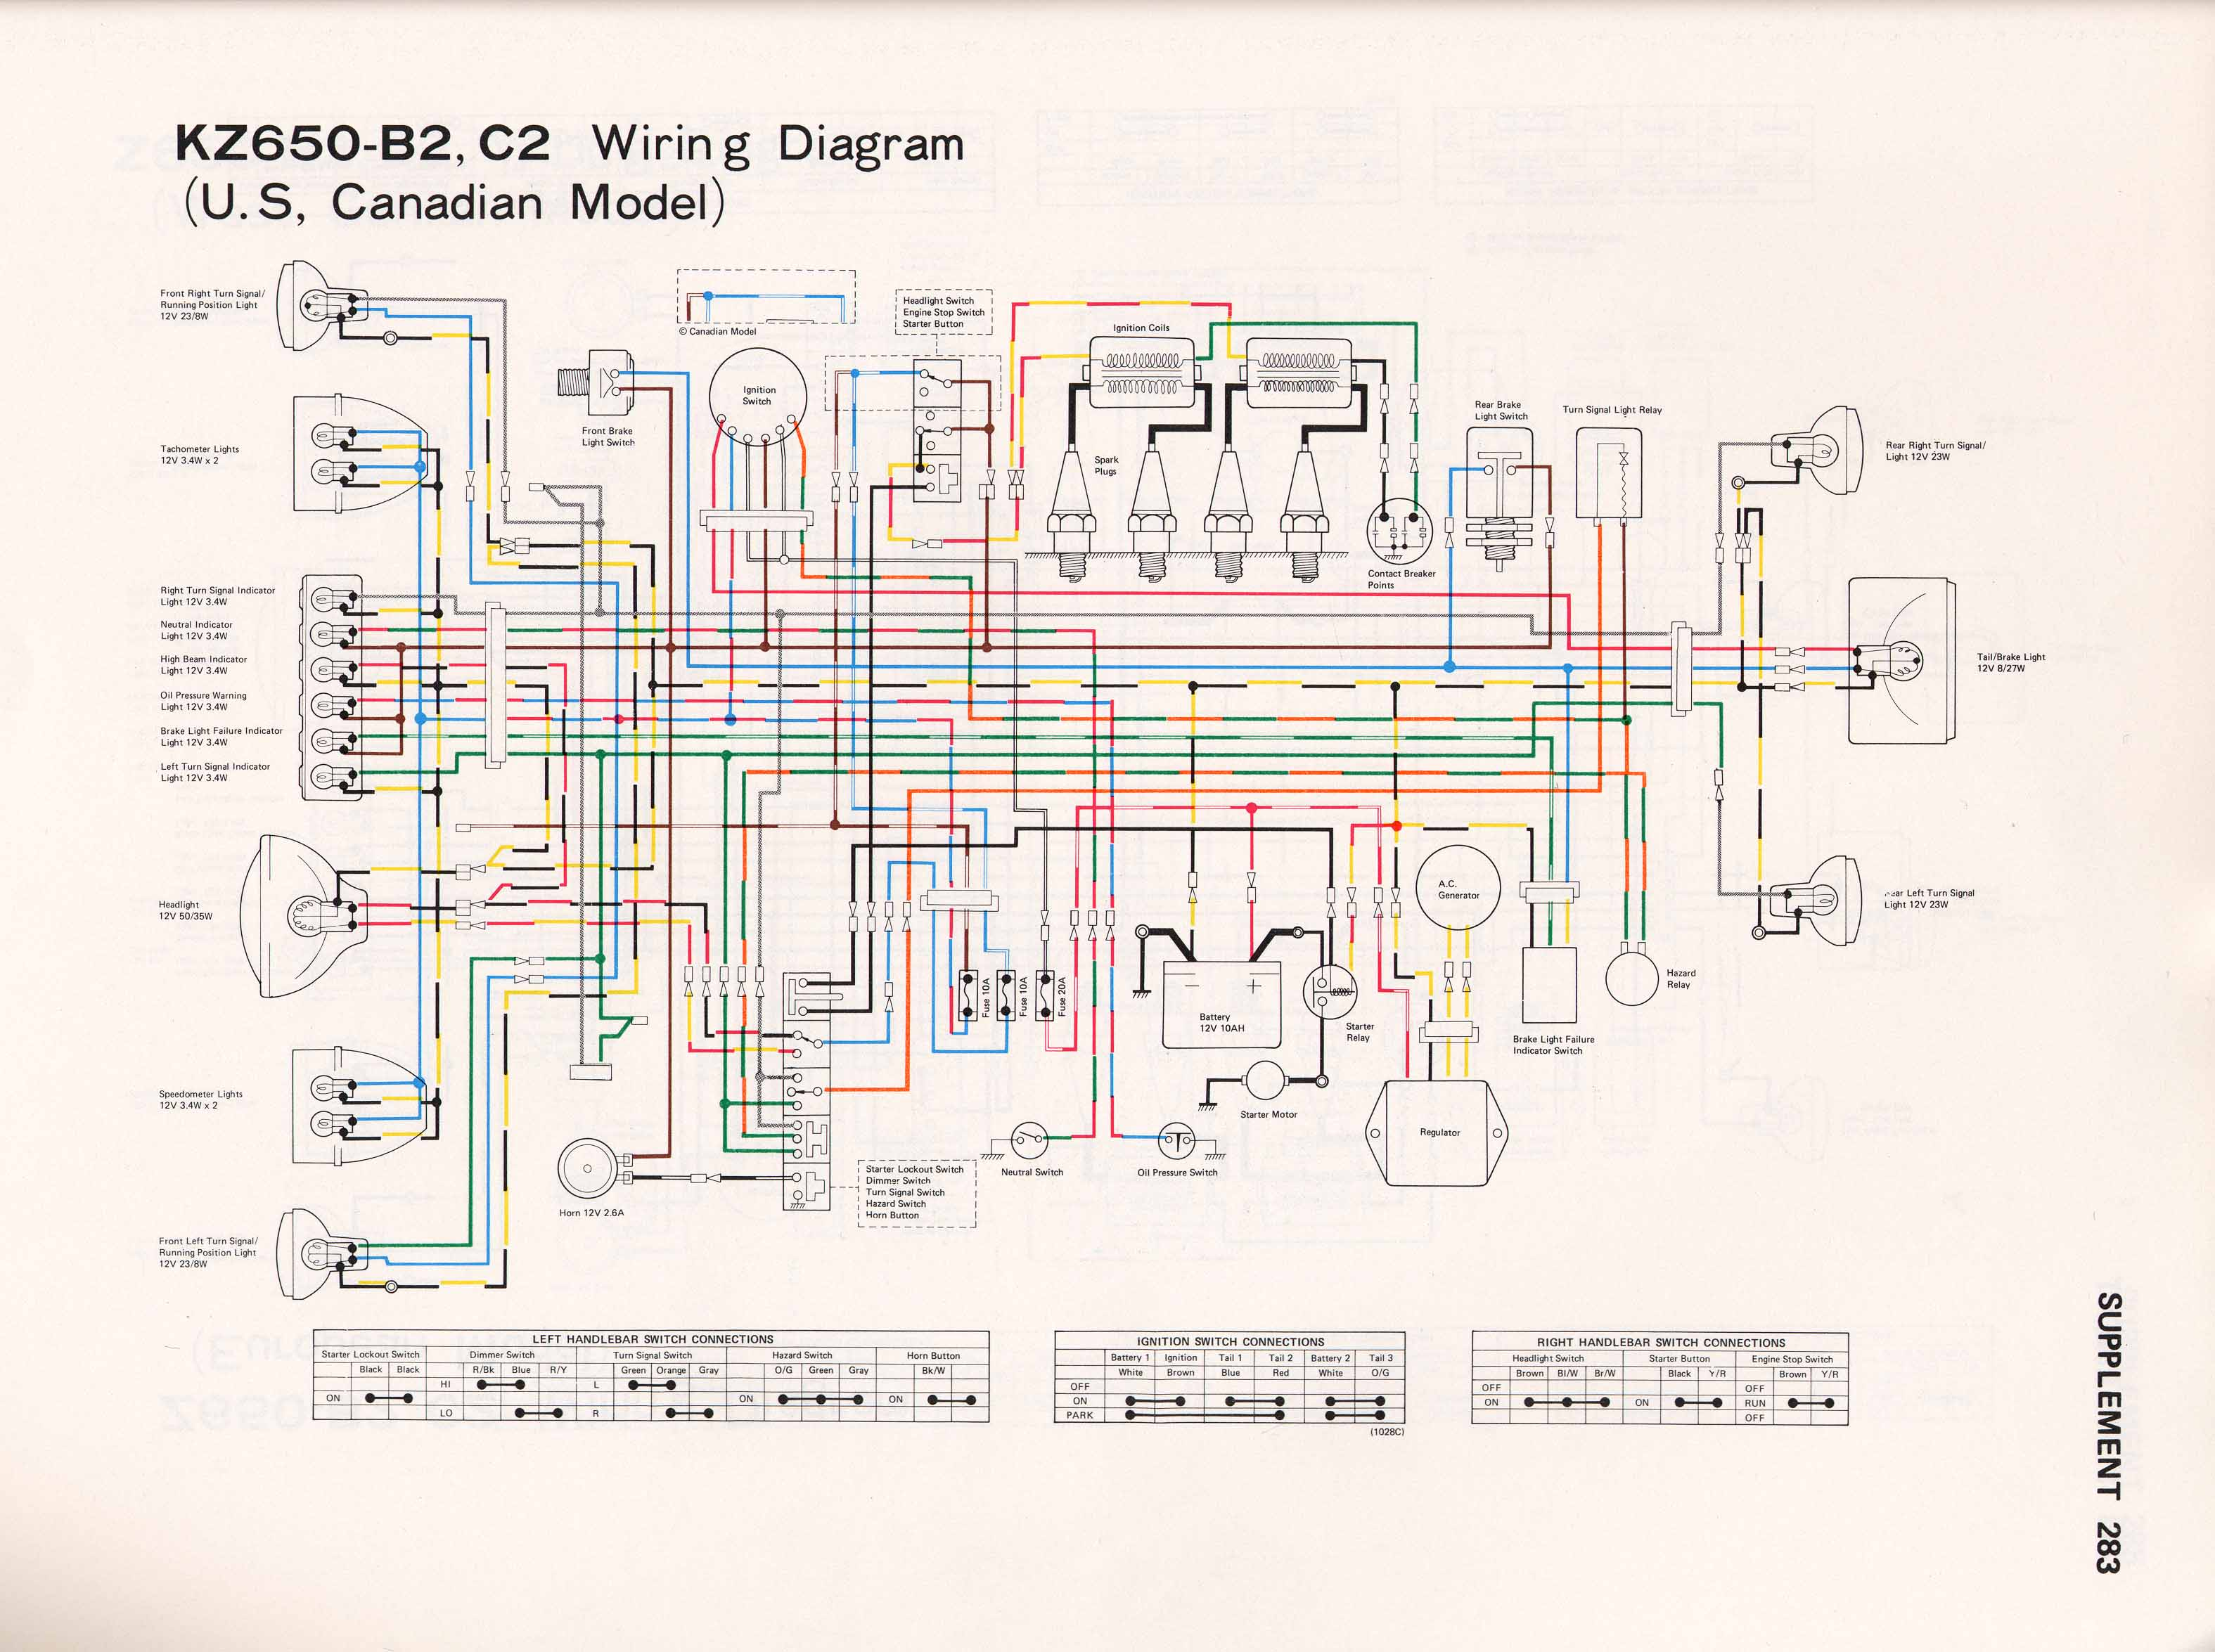 1979 kz1000 wiring diagram images 77 k z 400 wiring diagram kz400 1979 kz1300 wiring diagram home